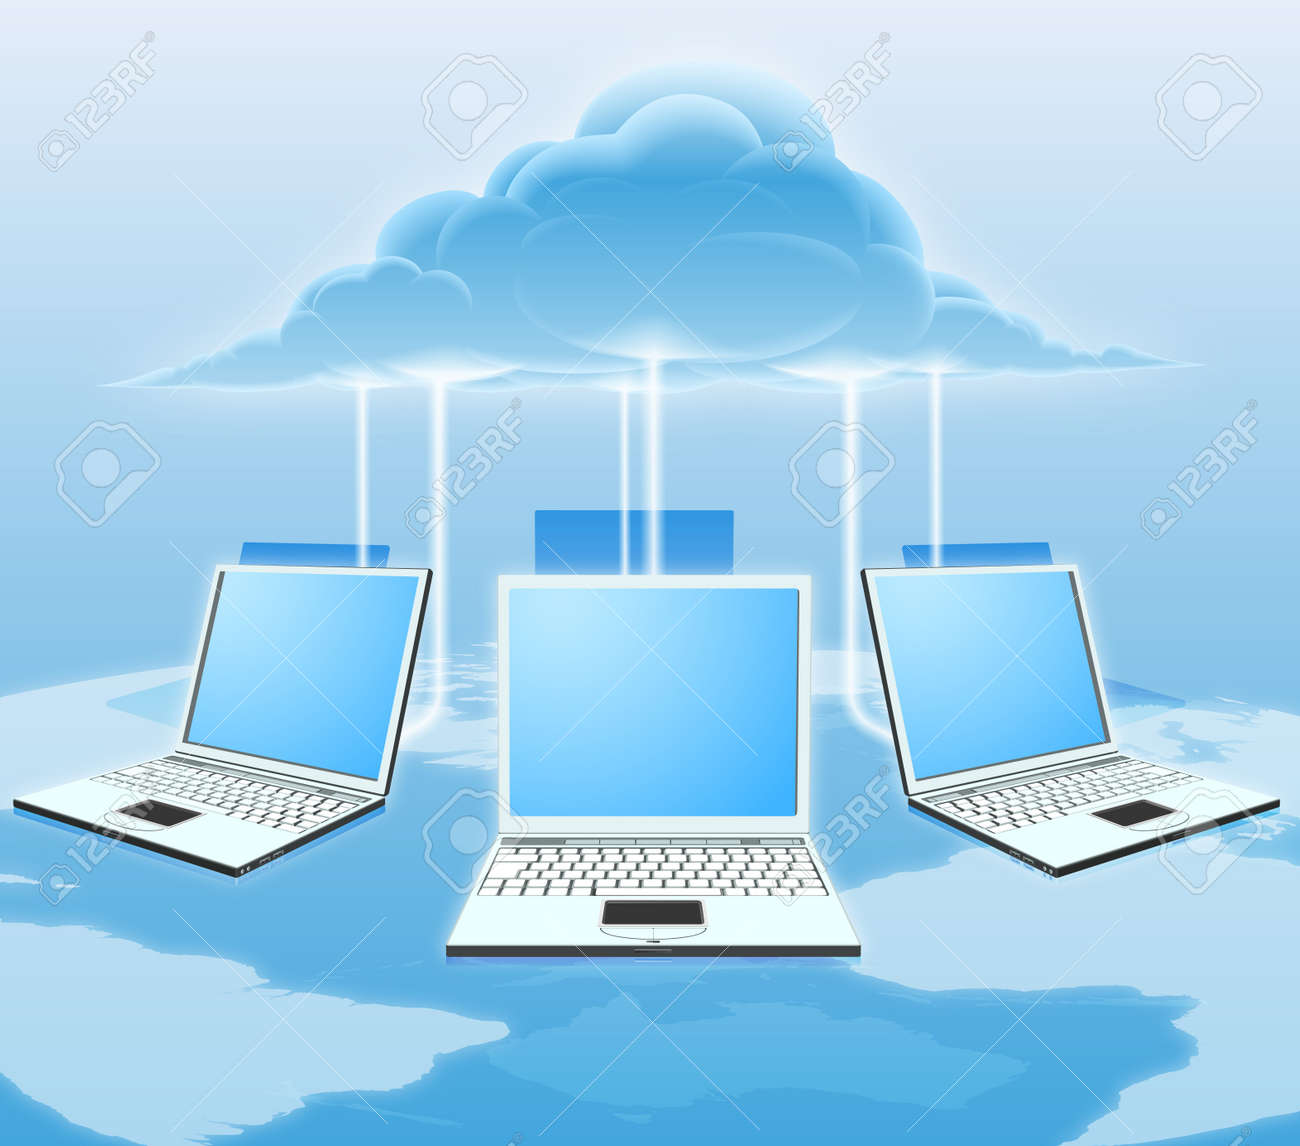 A conceptual cloud computing illustration. Laptops connected to the cloud with a world map in the background. - 11863156